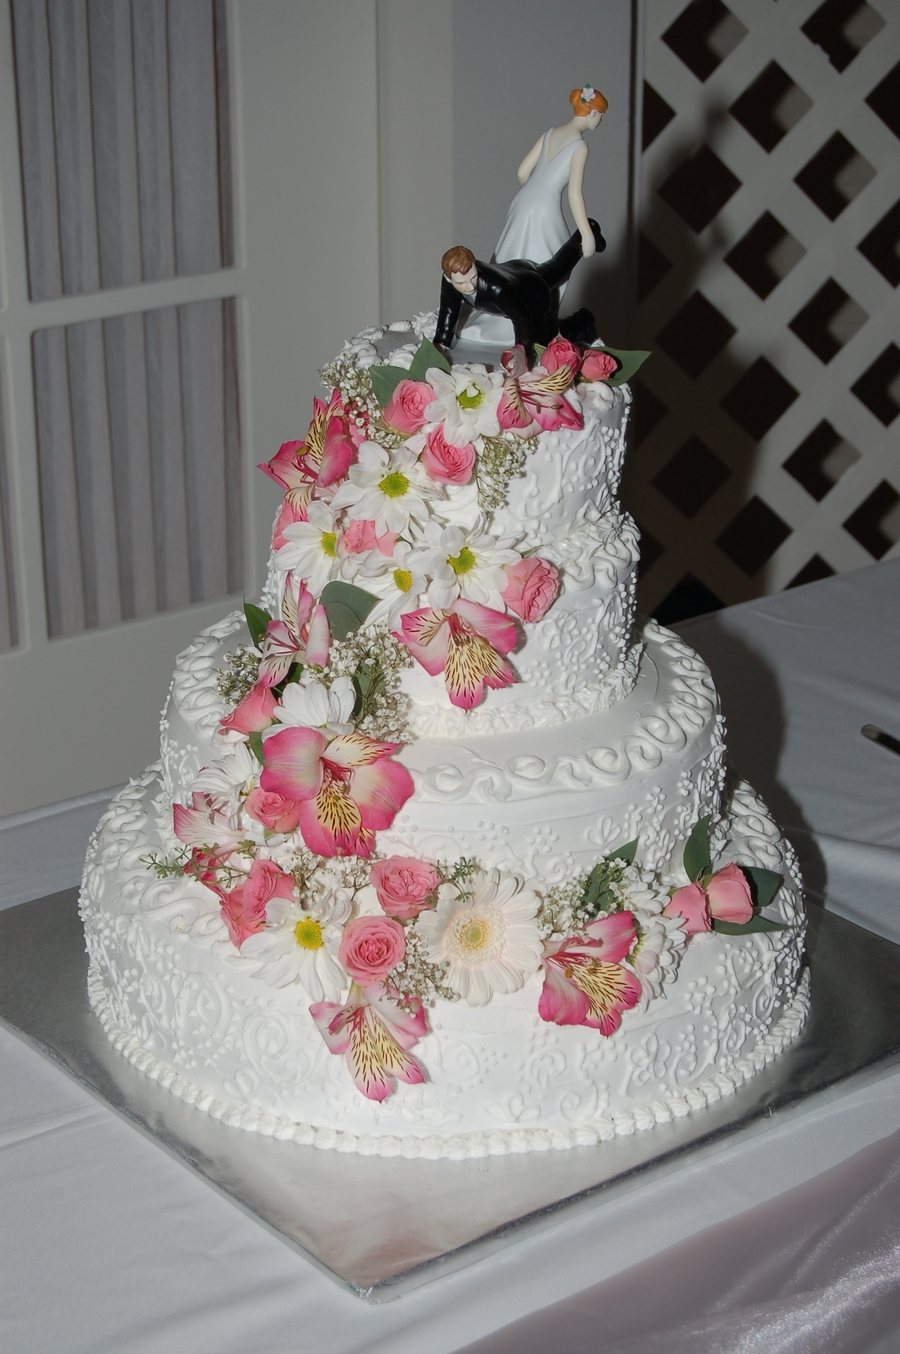 Son's Wedding Cake on Cake Central